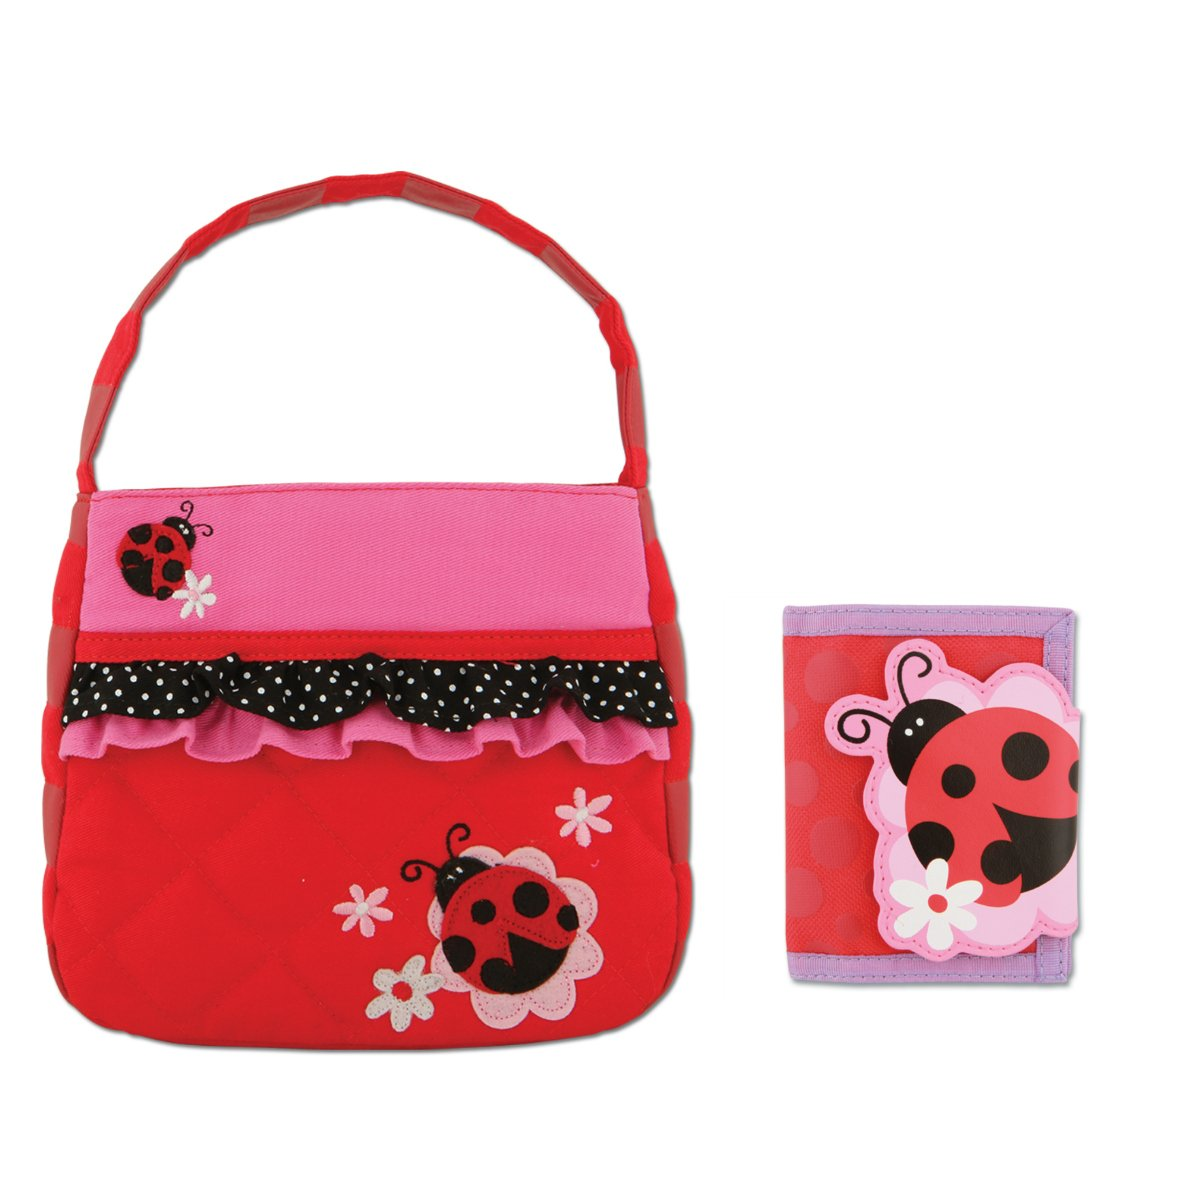 Stephen Joseph Girls Quilted Ladybug Purse and Wallet for Kids